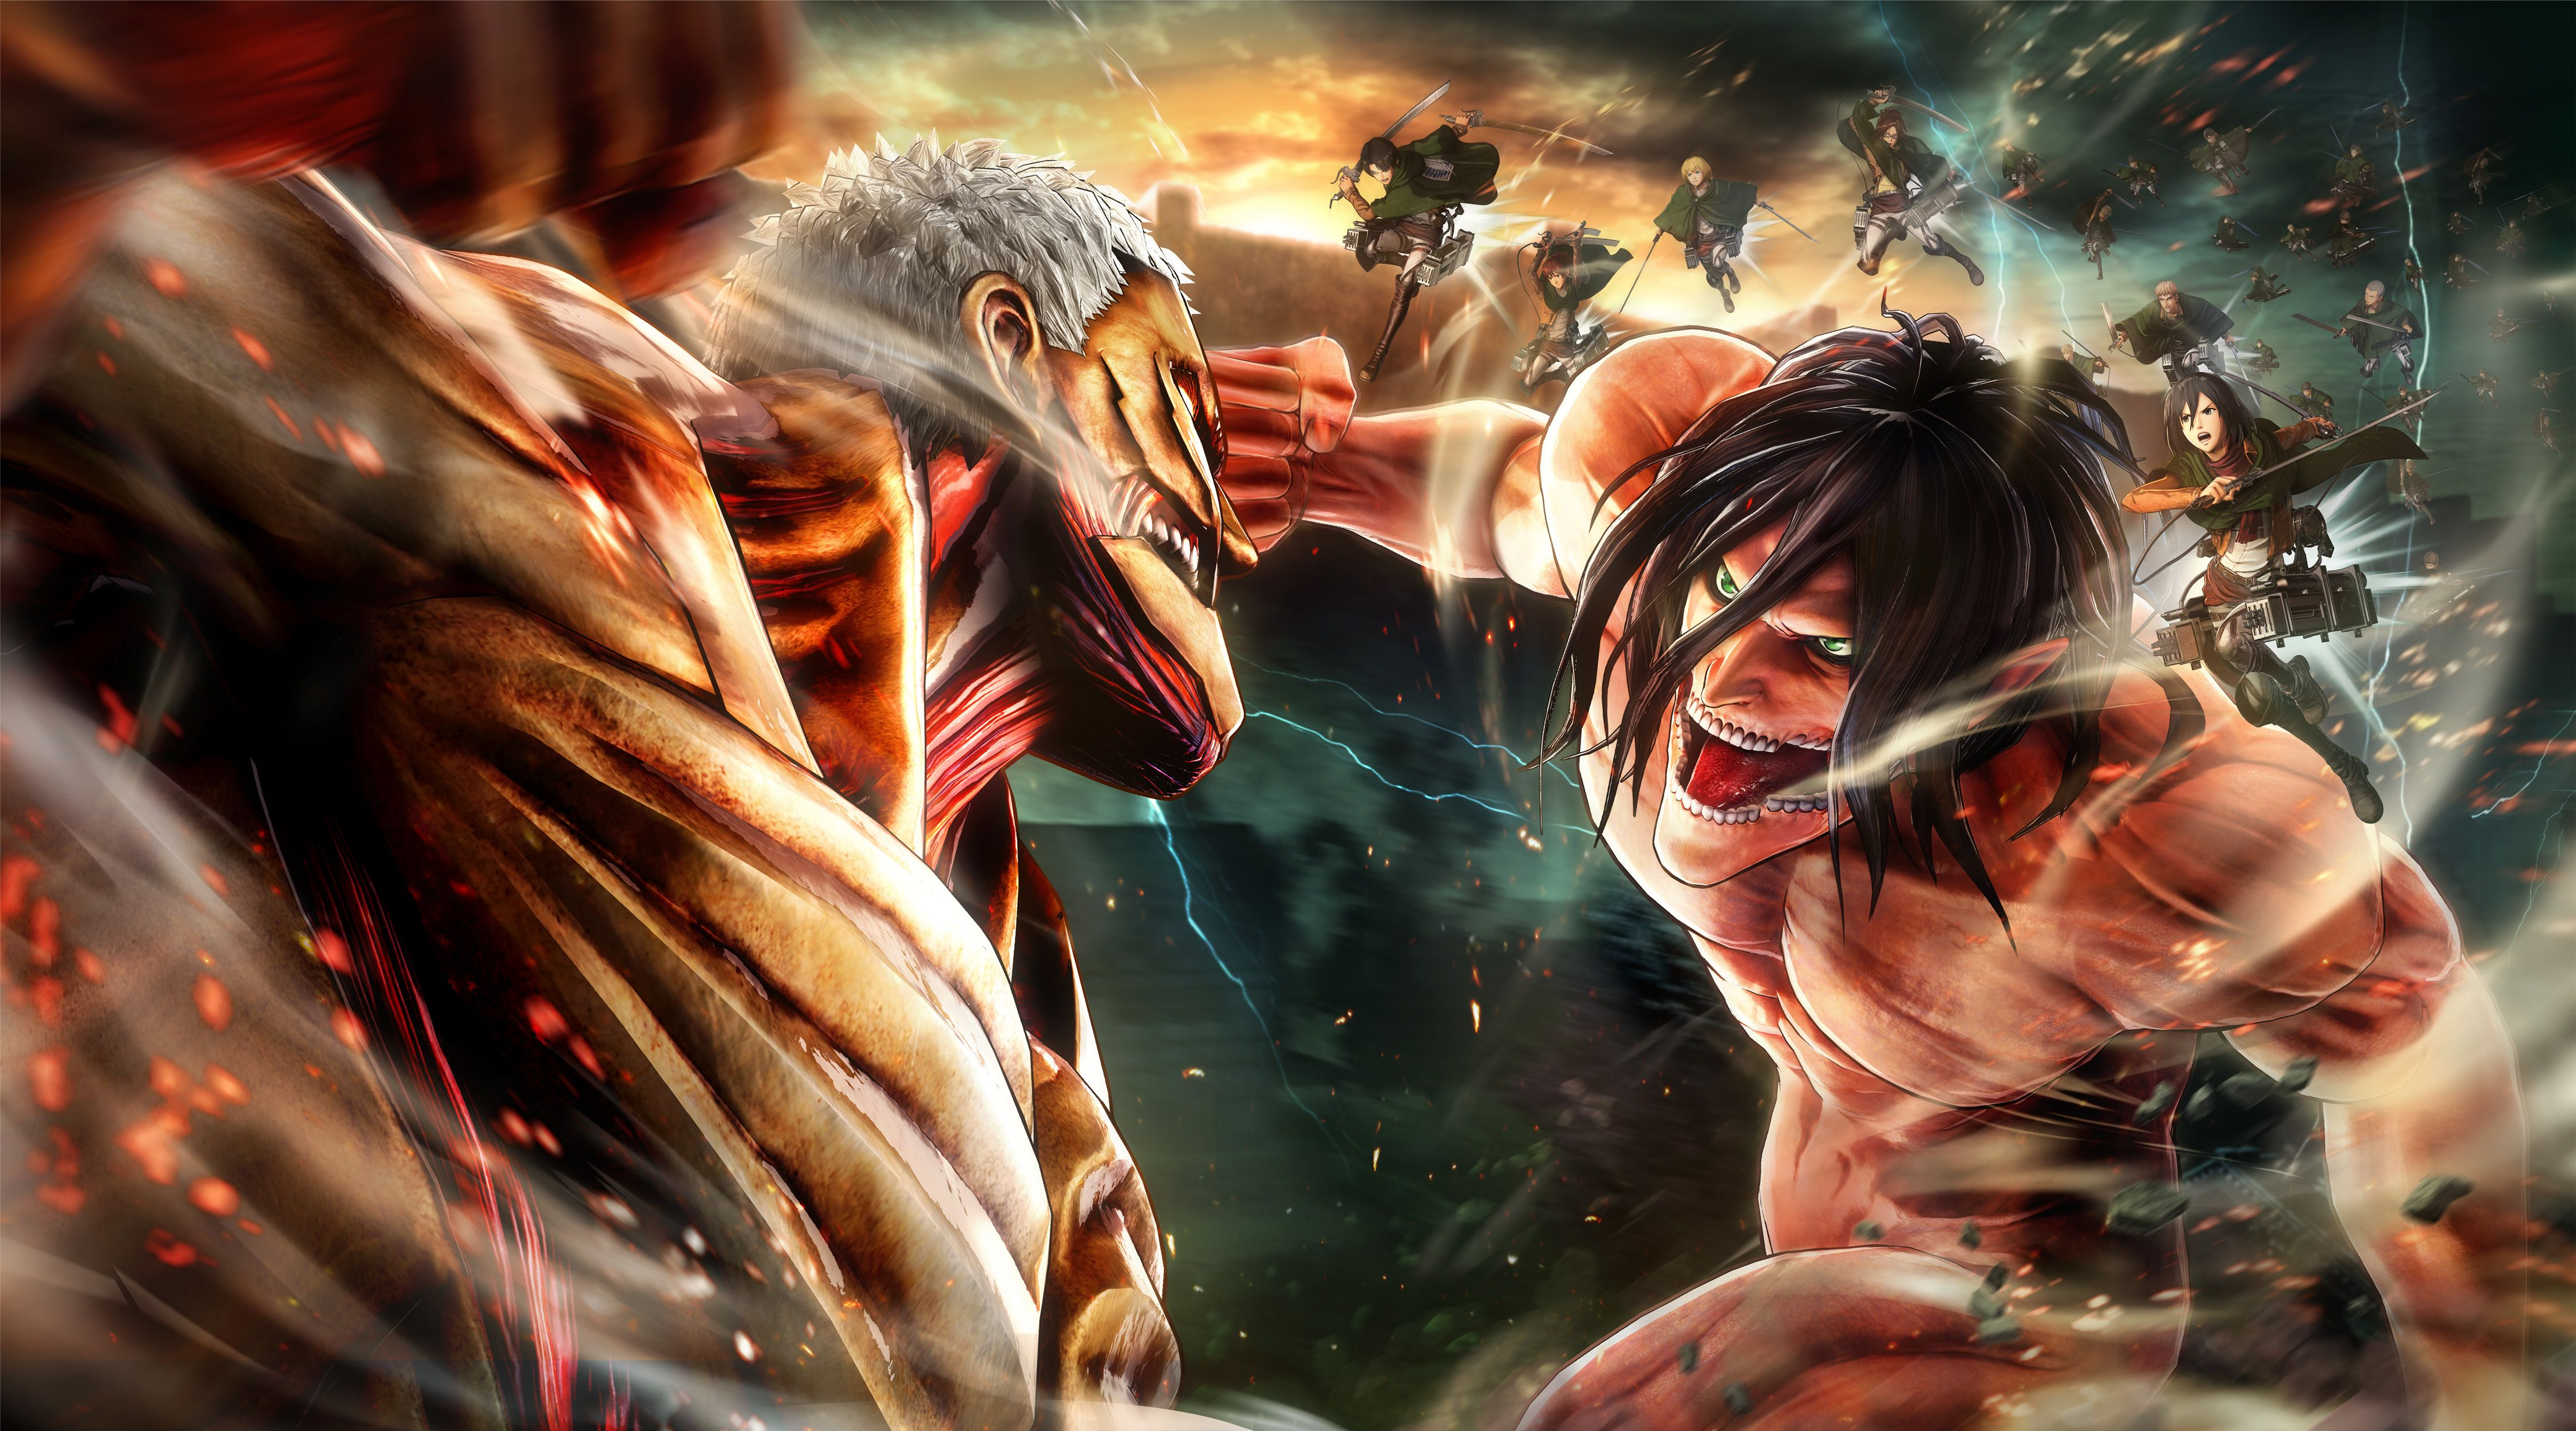 Aot Phone Wallpapers Top Free Aot Phone Backgrounds Wallpaperaccess